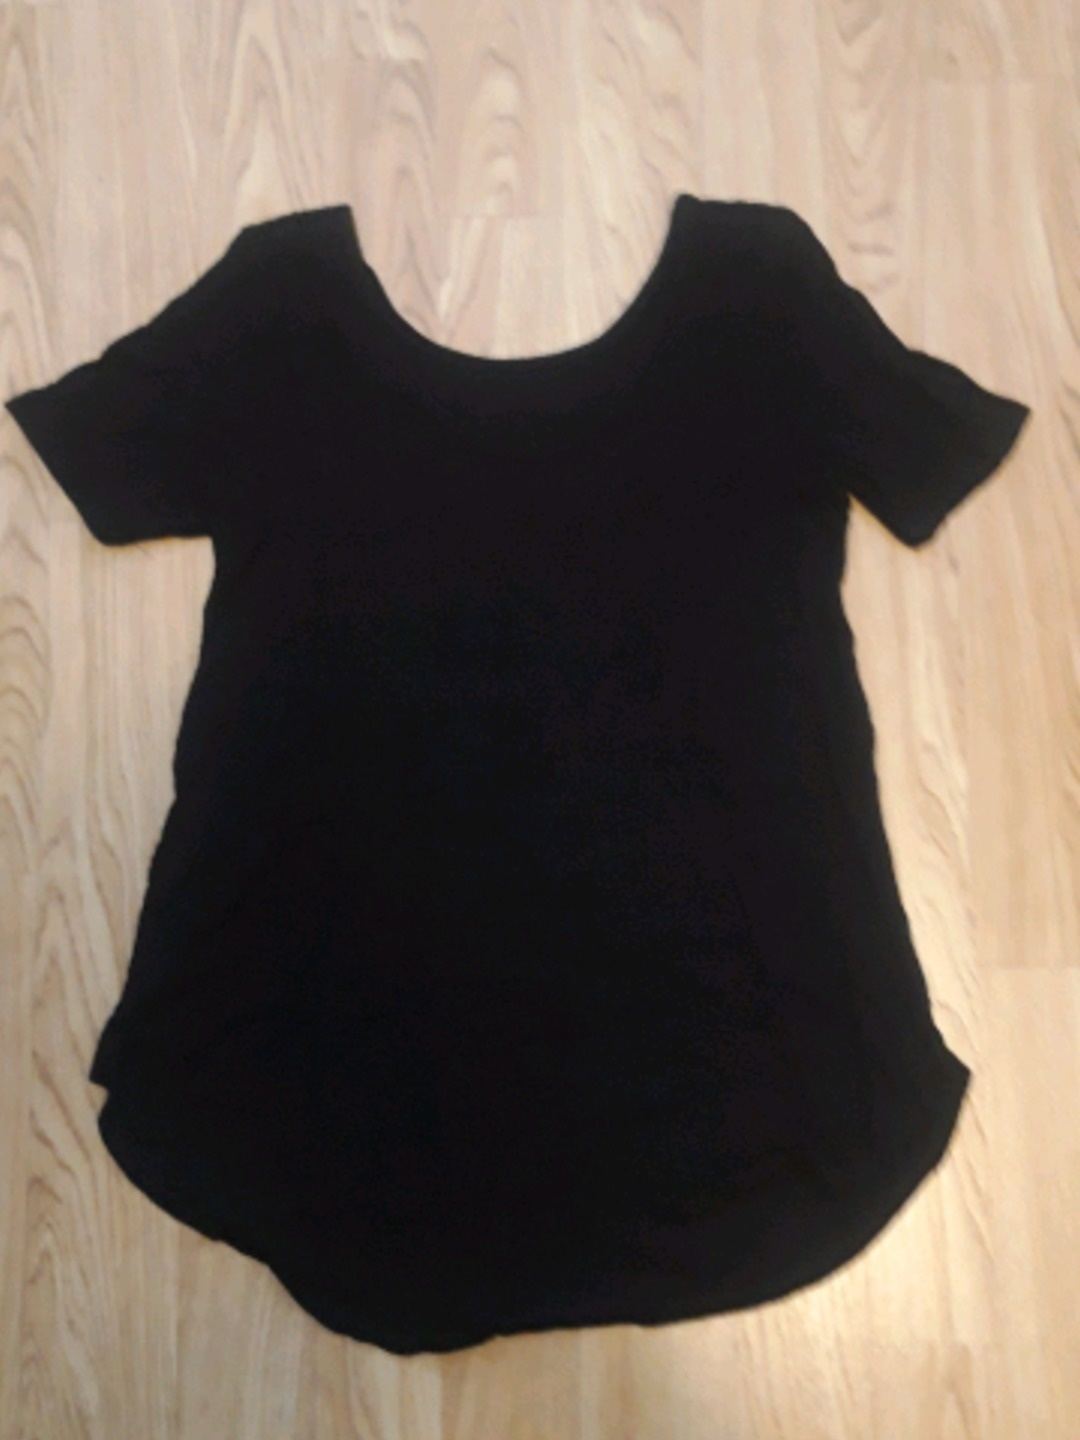 Damers toppe og t-shirts - GINA TRICOT photo 2